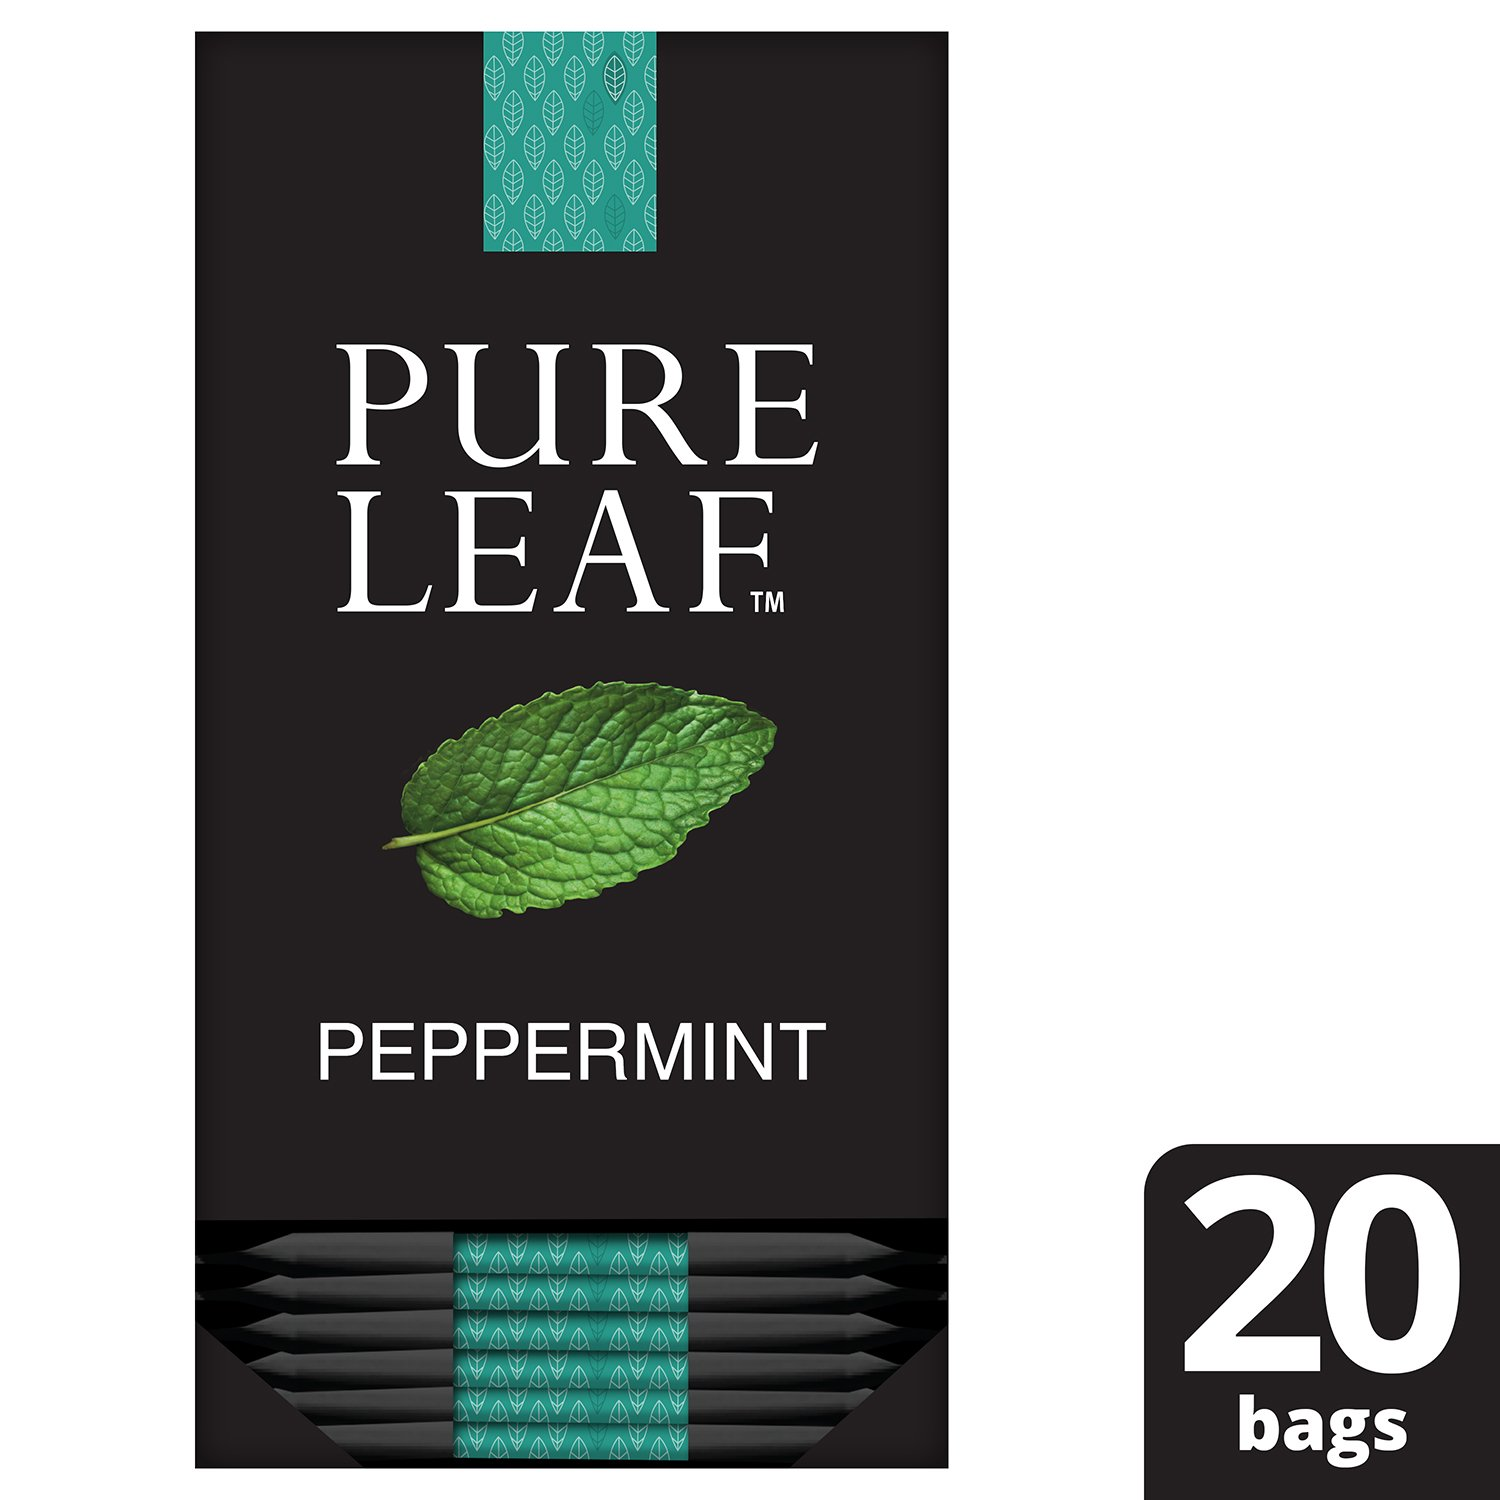 Pure Leaf Peppermint Herbal Tea -